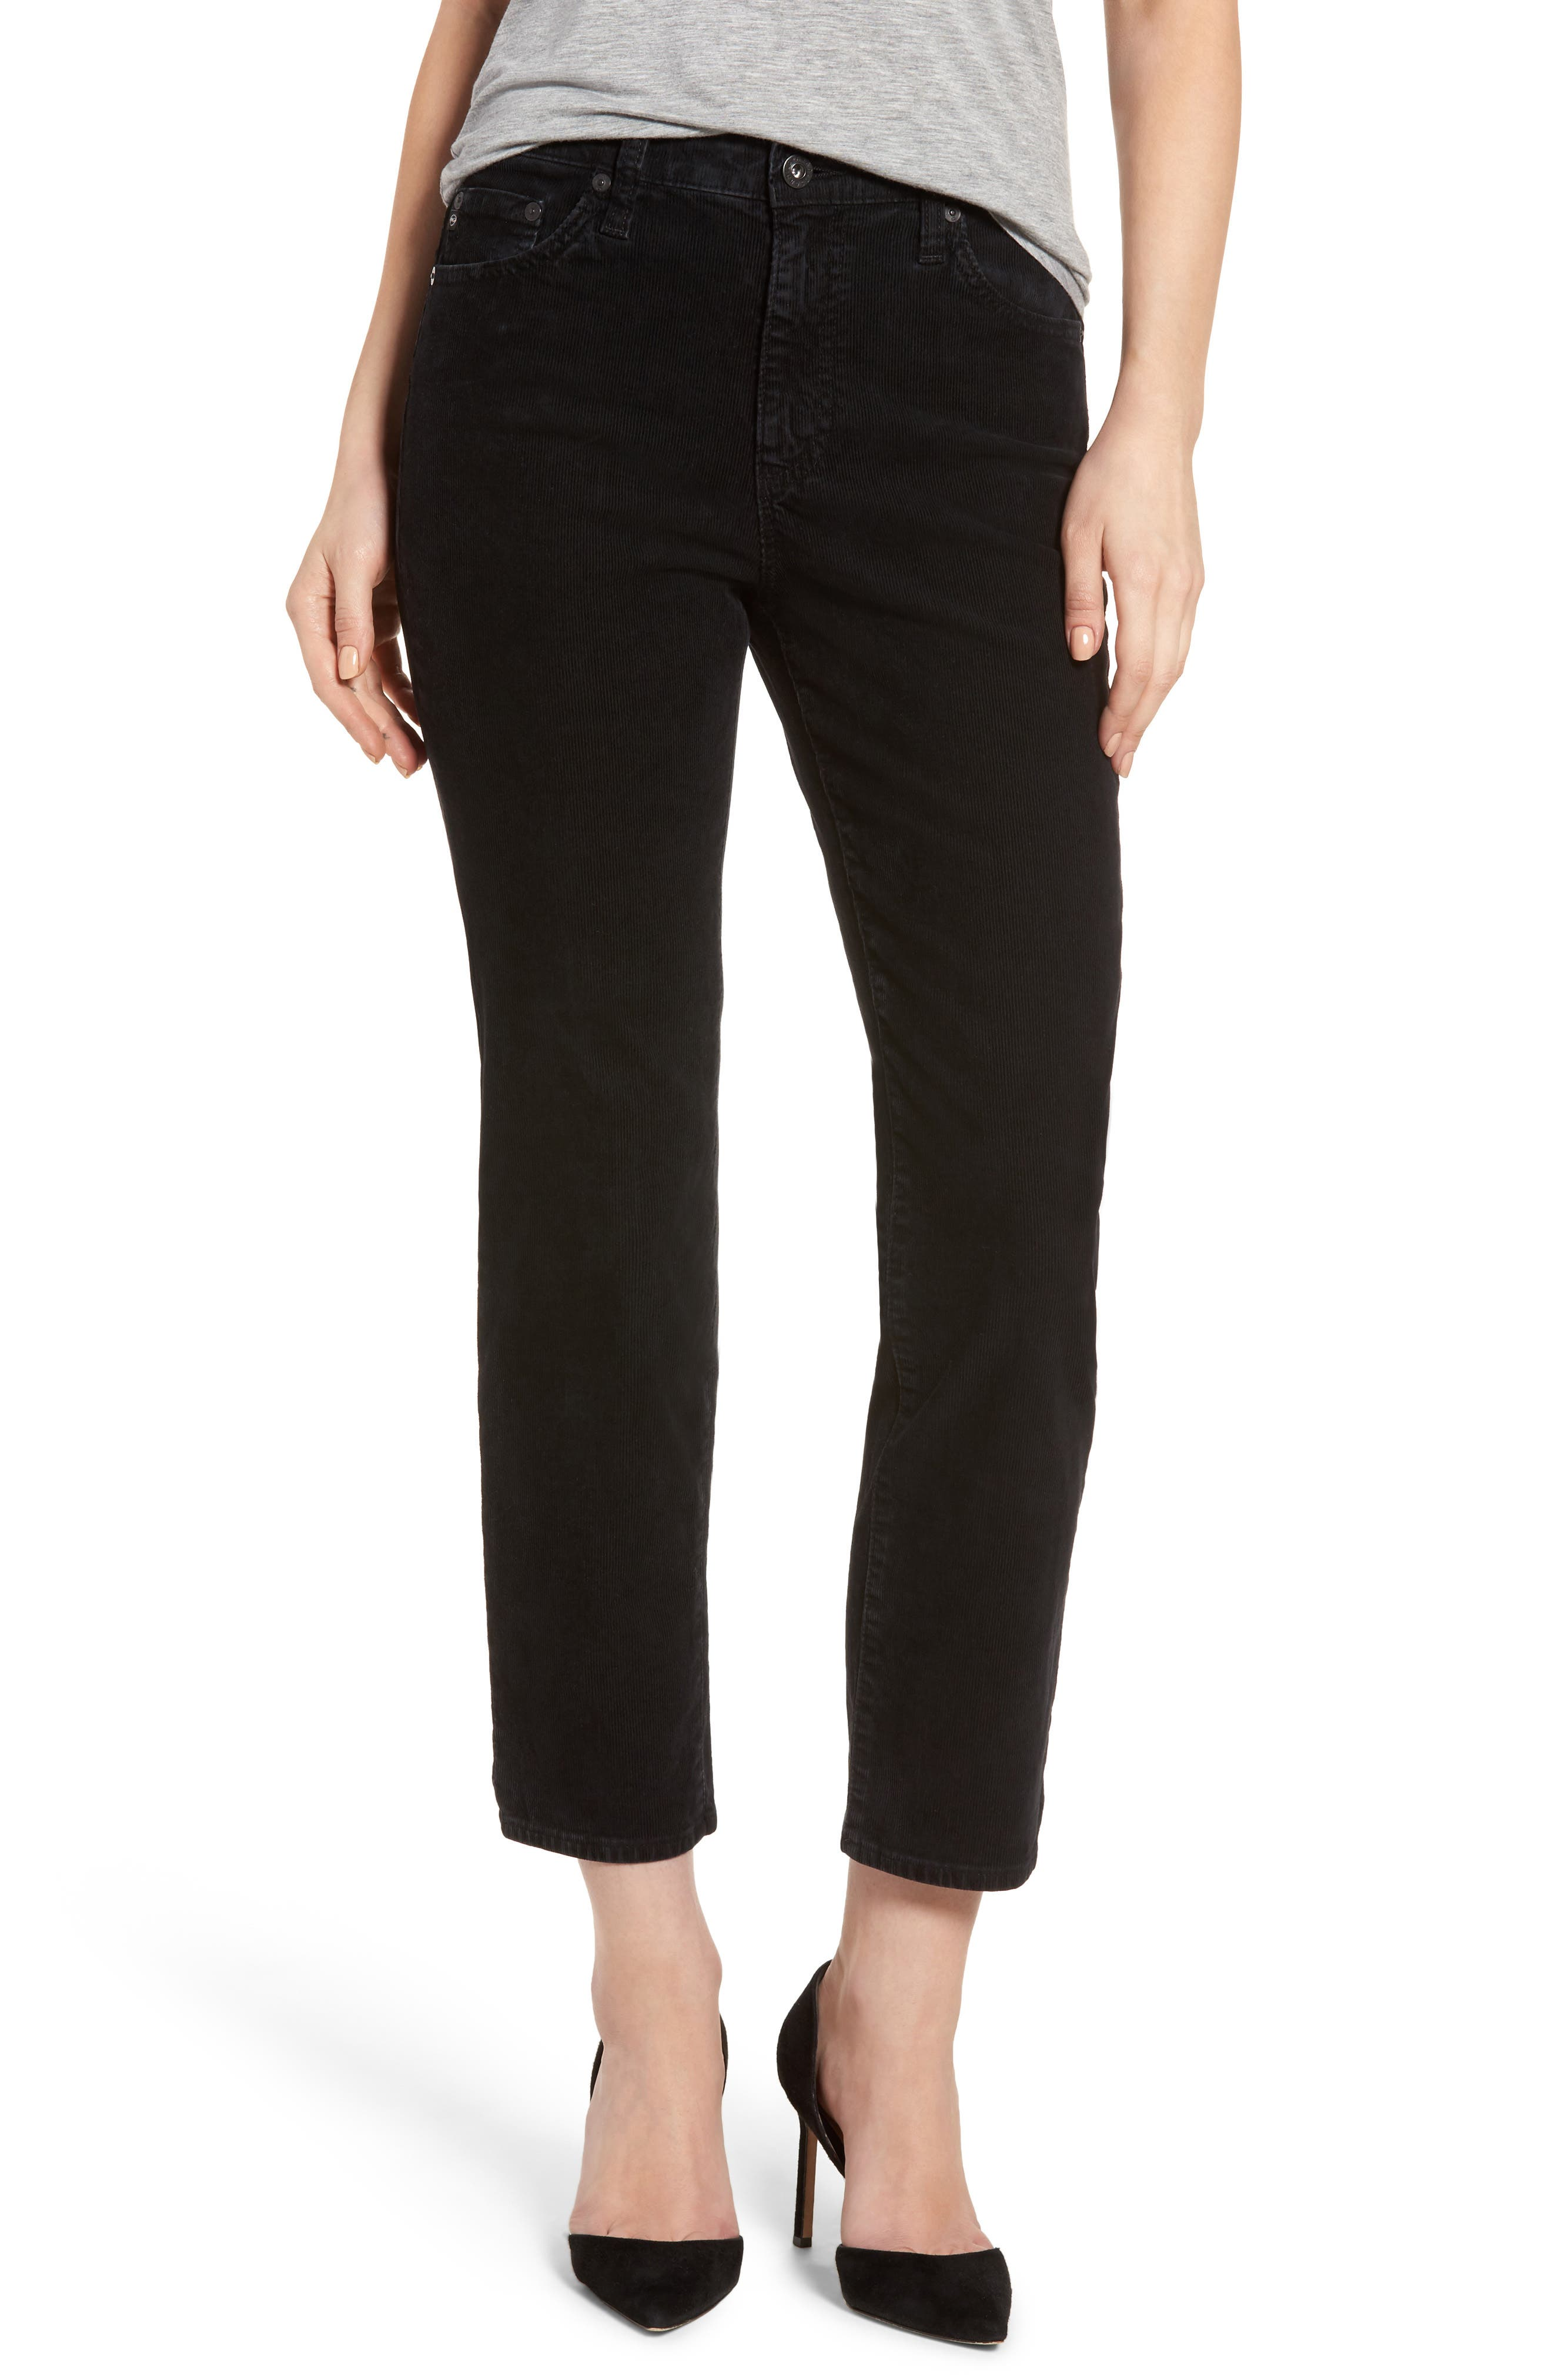 AG Isabelle High Waist Corduroy Jeans